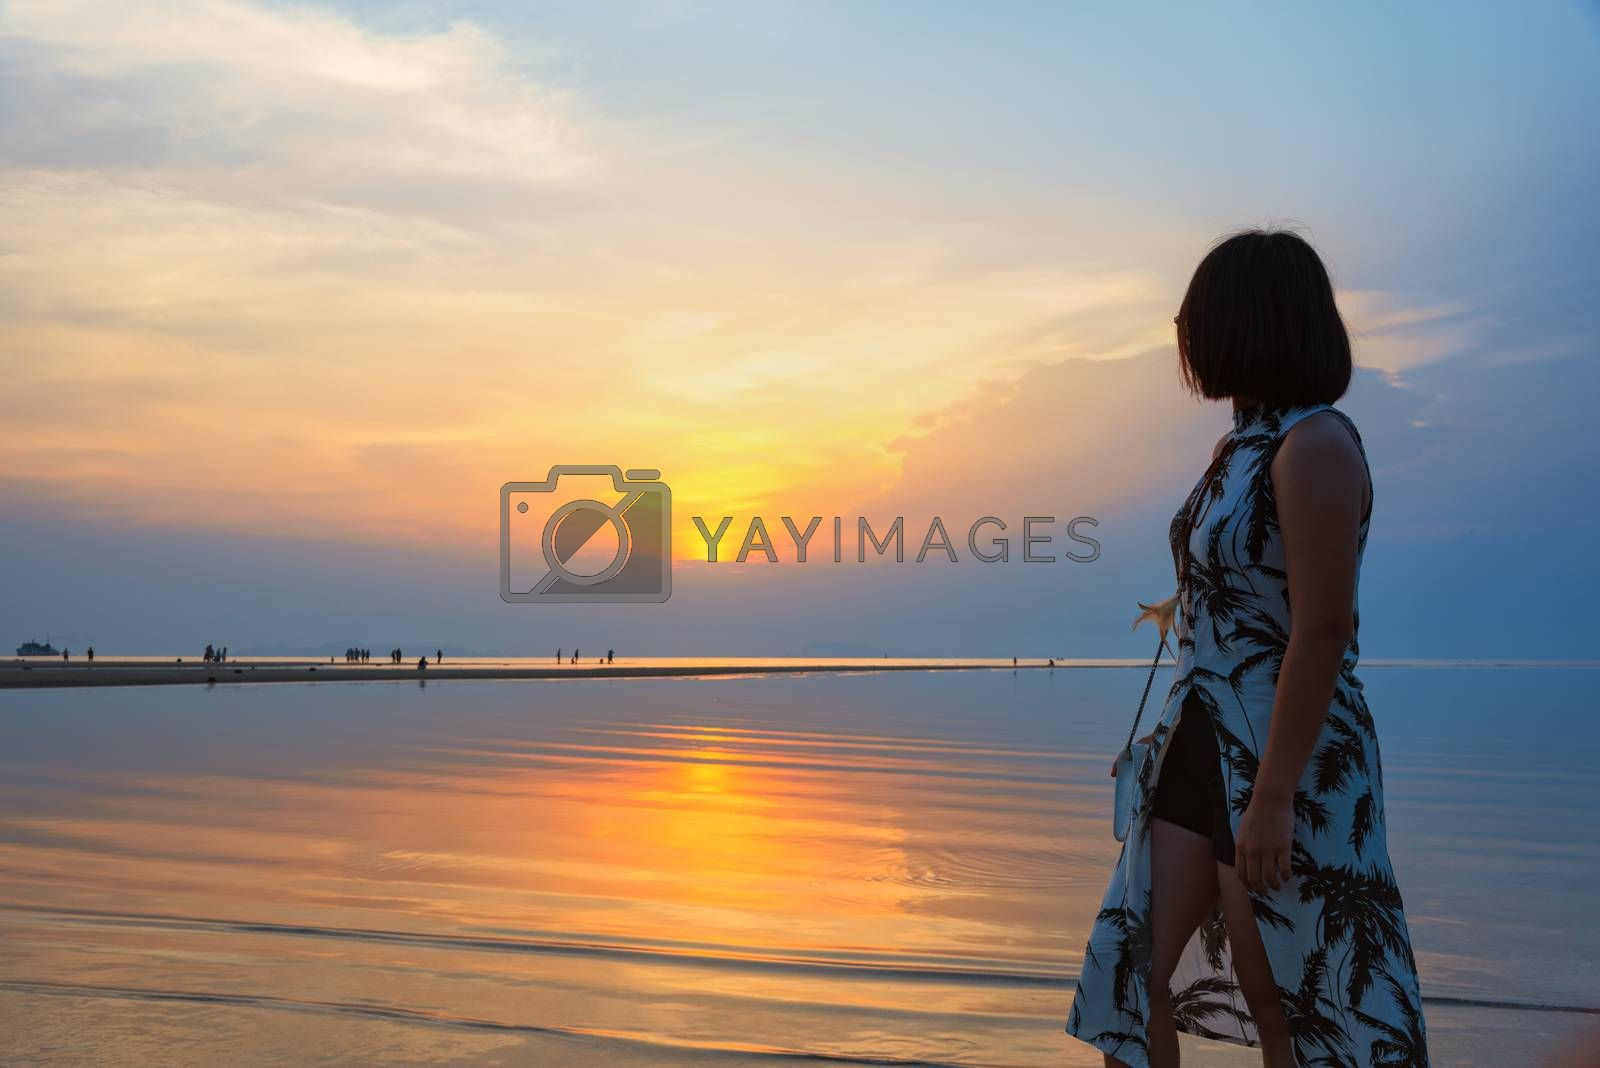 Young woman are standing watching the beautiful natural landscape, colorful of the sky and the sea during a sunset on the beach at Nathon Sunset Viewpoint in Ko Samui island, Surat Thani, Thailand